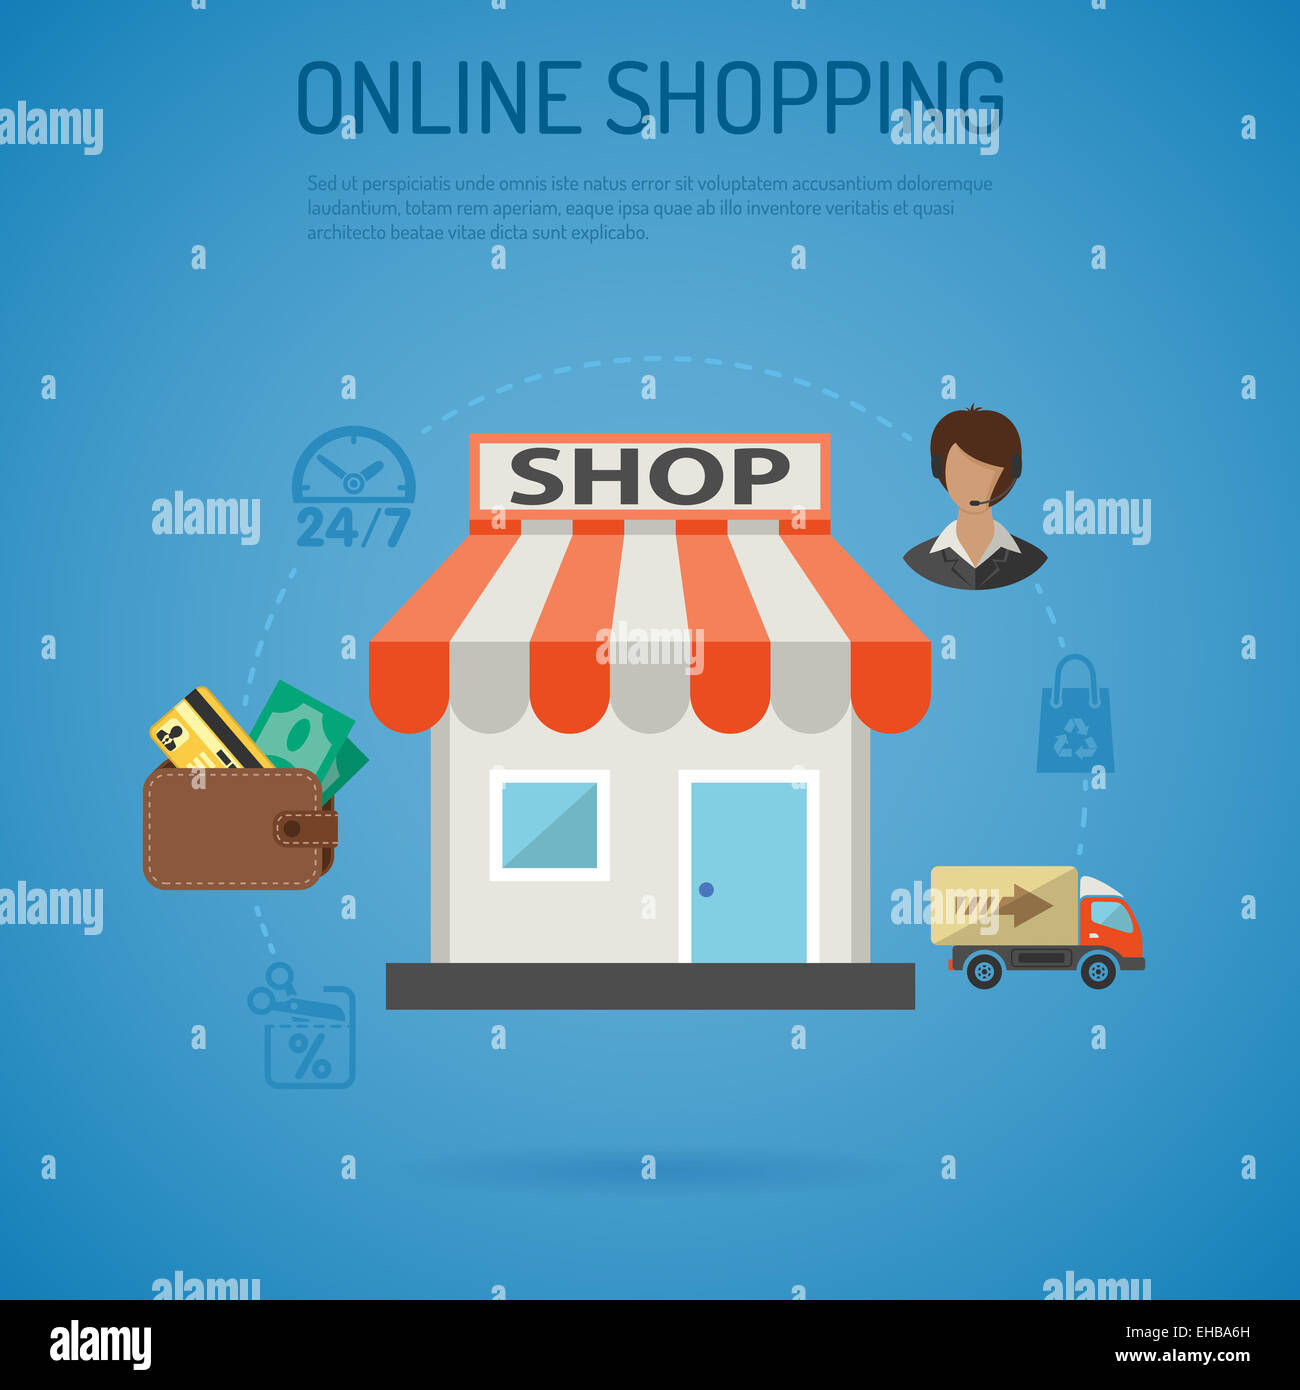 Poster Online Kaufen Internet Online Shopping Poster With Flat Icons For E-commerce Stock Photo - Alamy